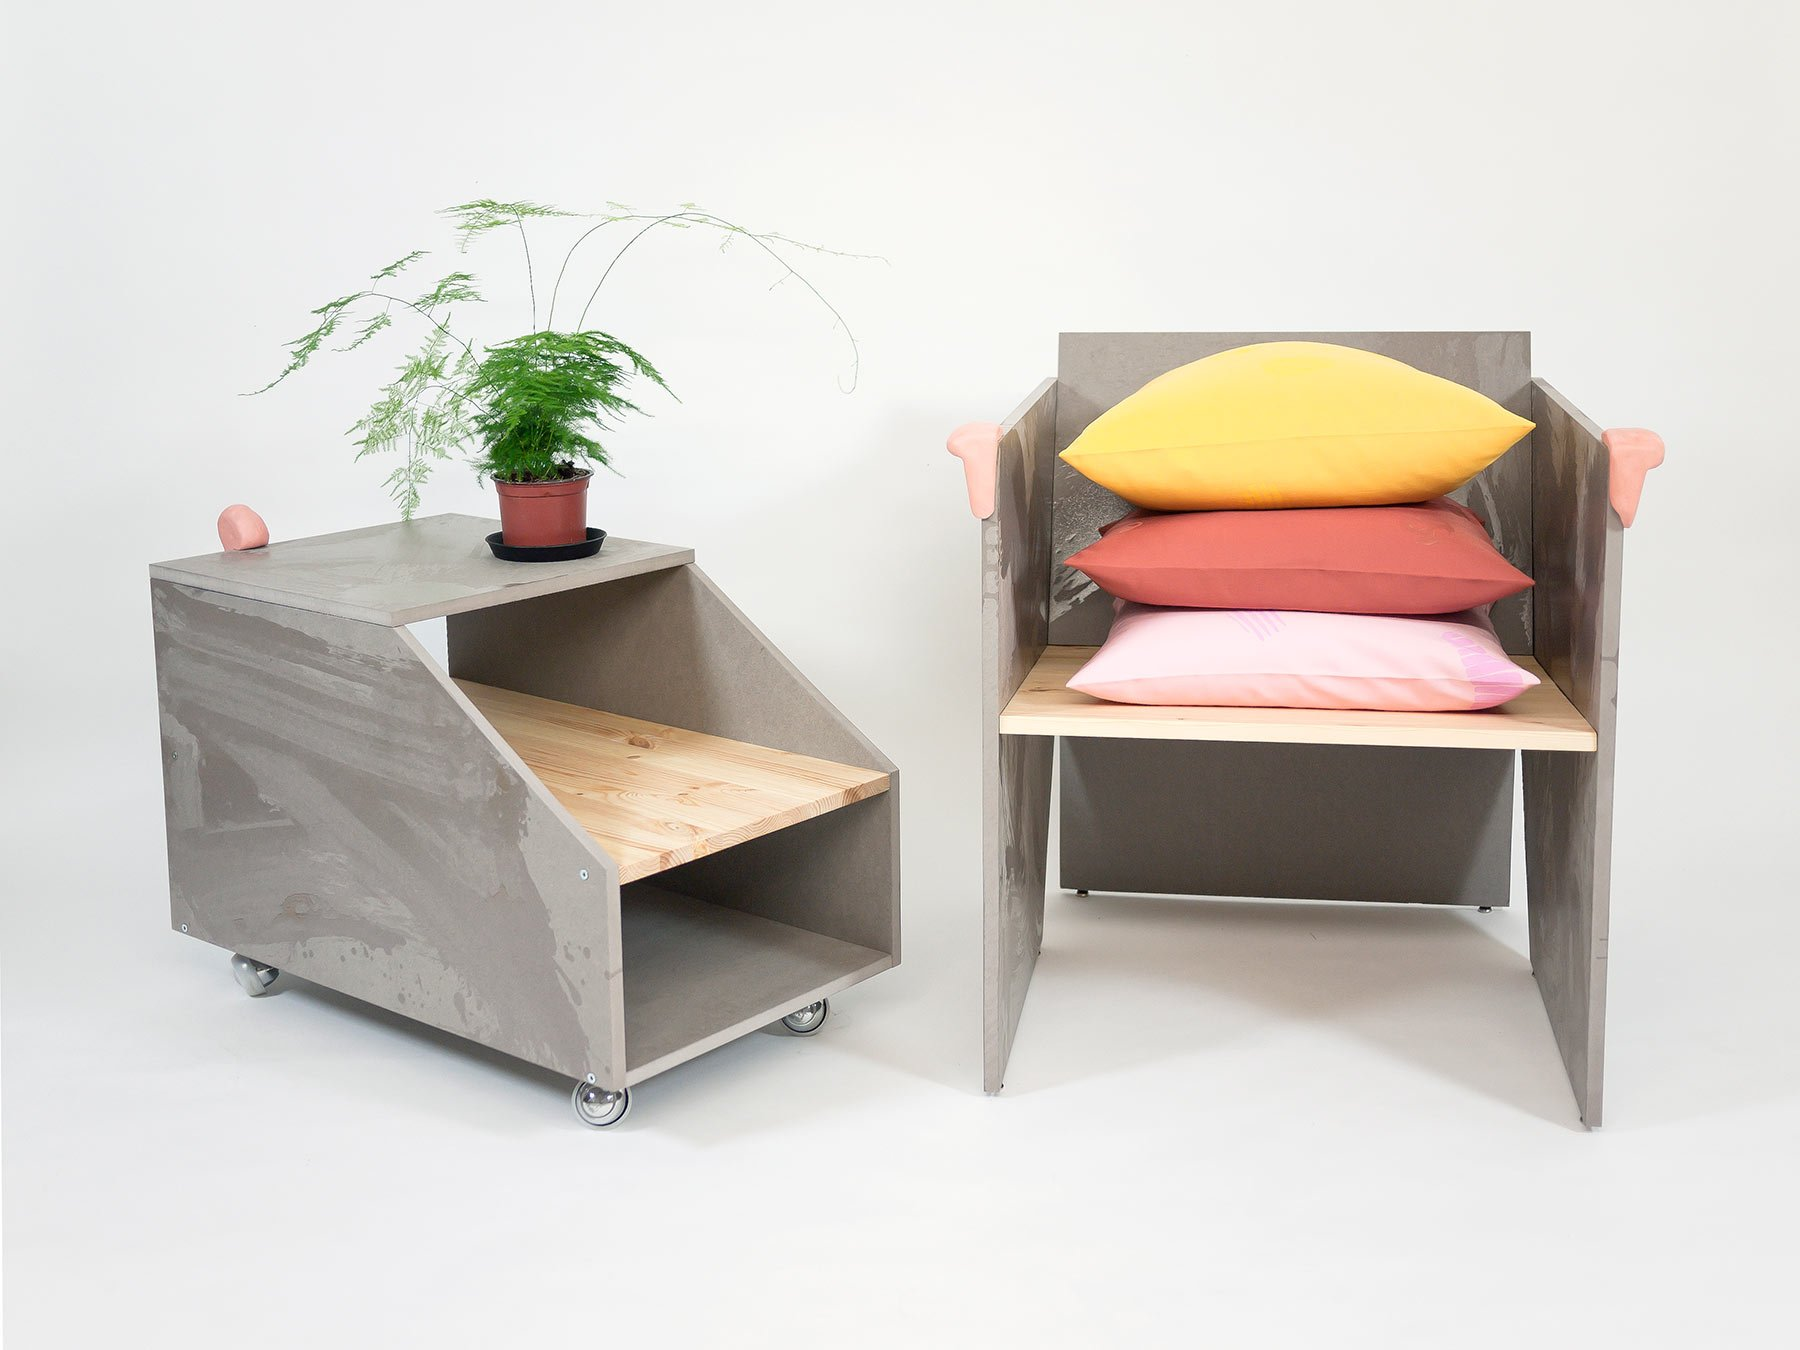 Rapid handmade furniture by jenny nordberg for Muebles hechos a mano